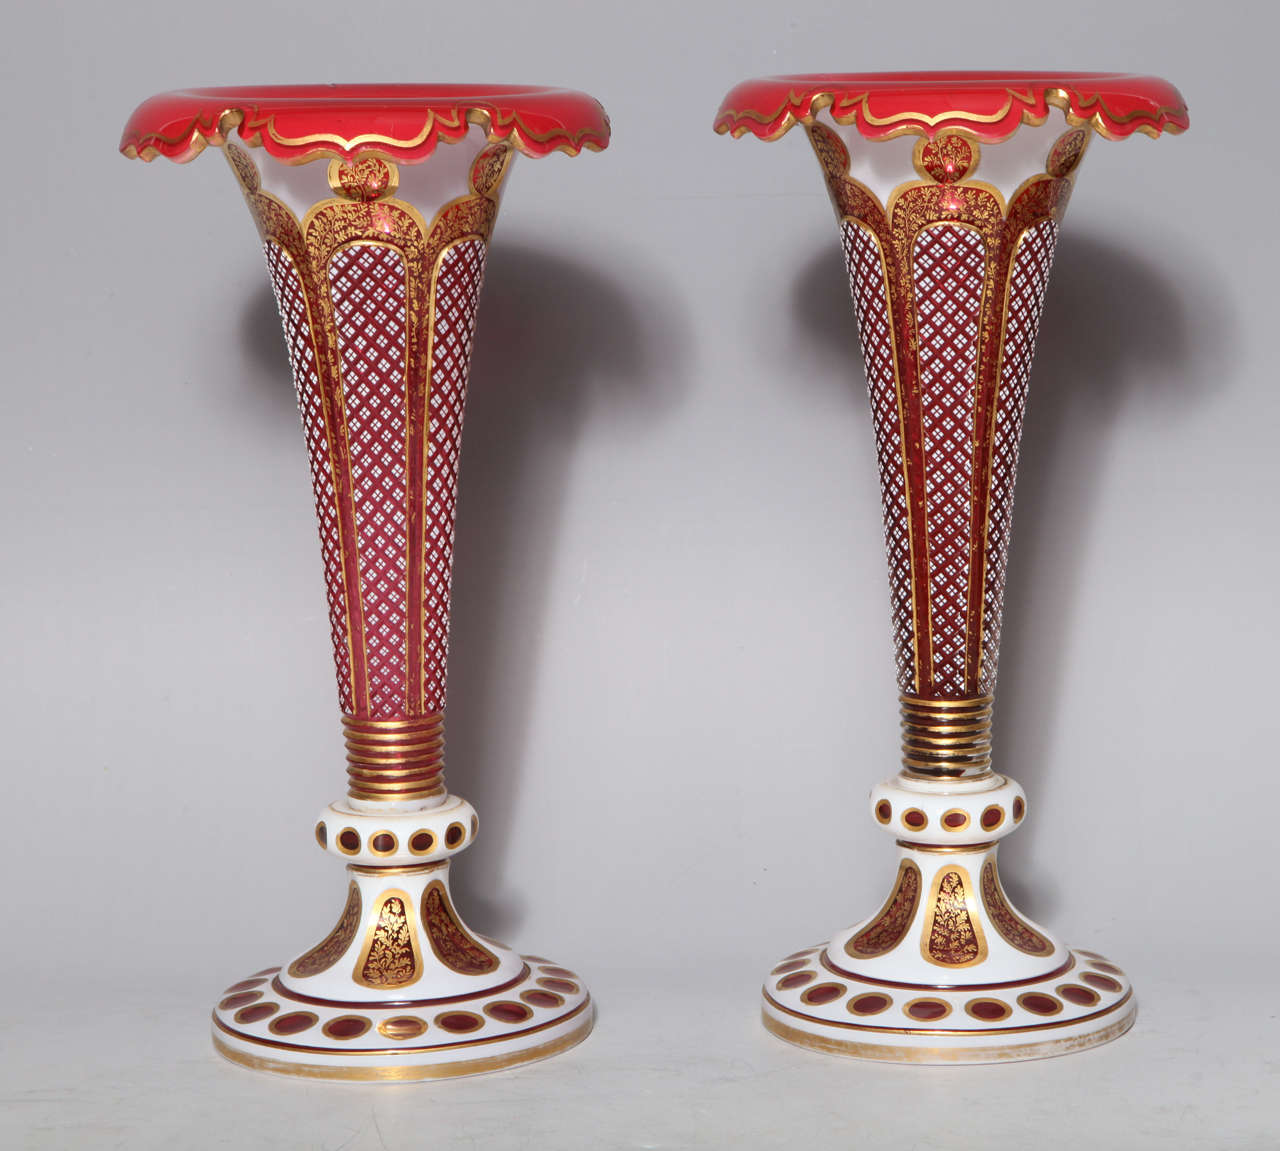 Pair of Antique Bohemian Double Overlay Cut-Glass Vases In Excellent Condition For Sale In New York, NY